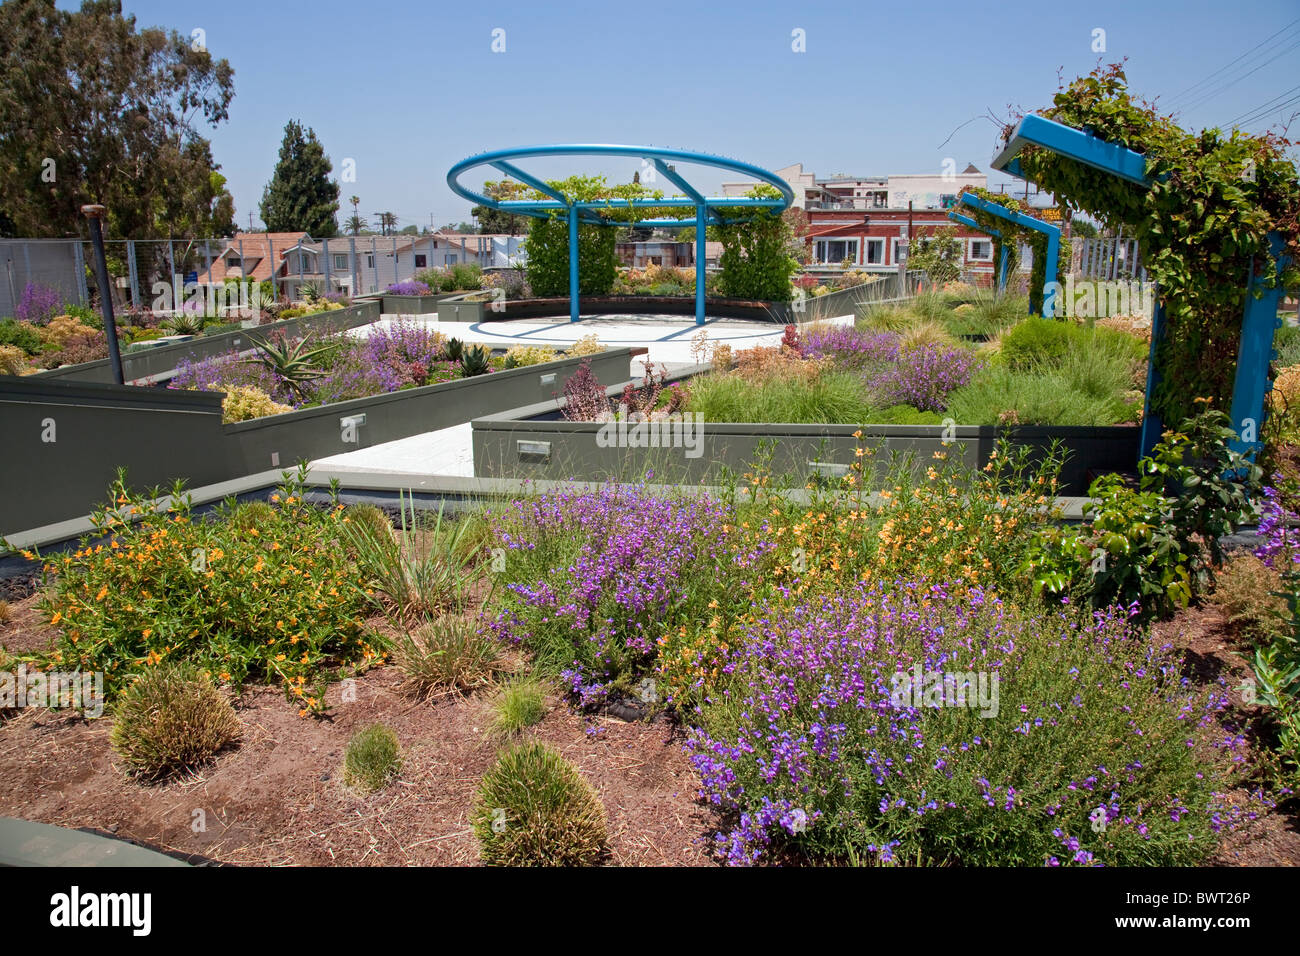 Drought tolerant green roof garden. The Council District 9 Neighborhood City Hall in South Central Los Angeles - Stock Image